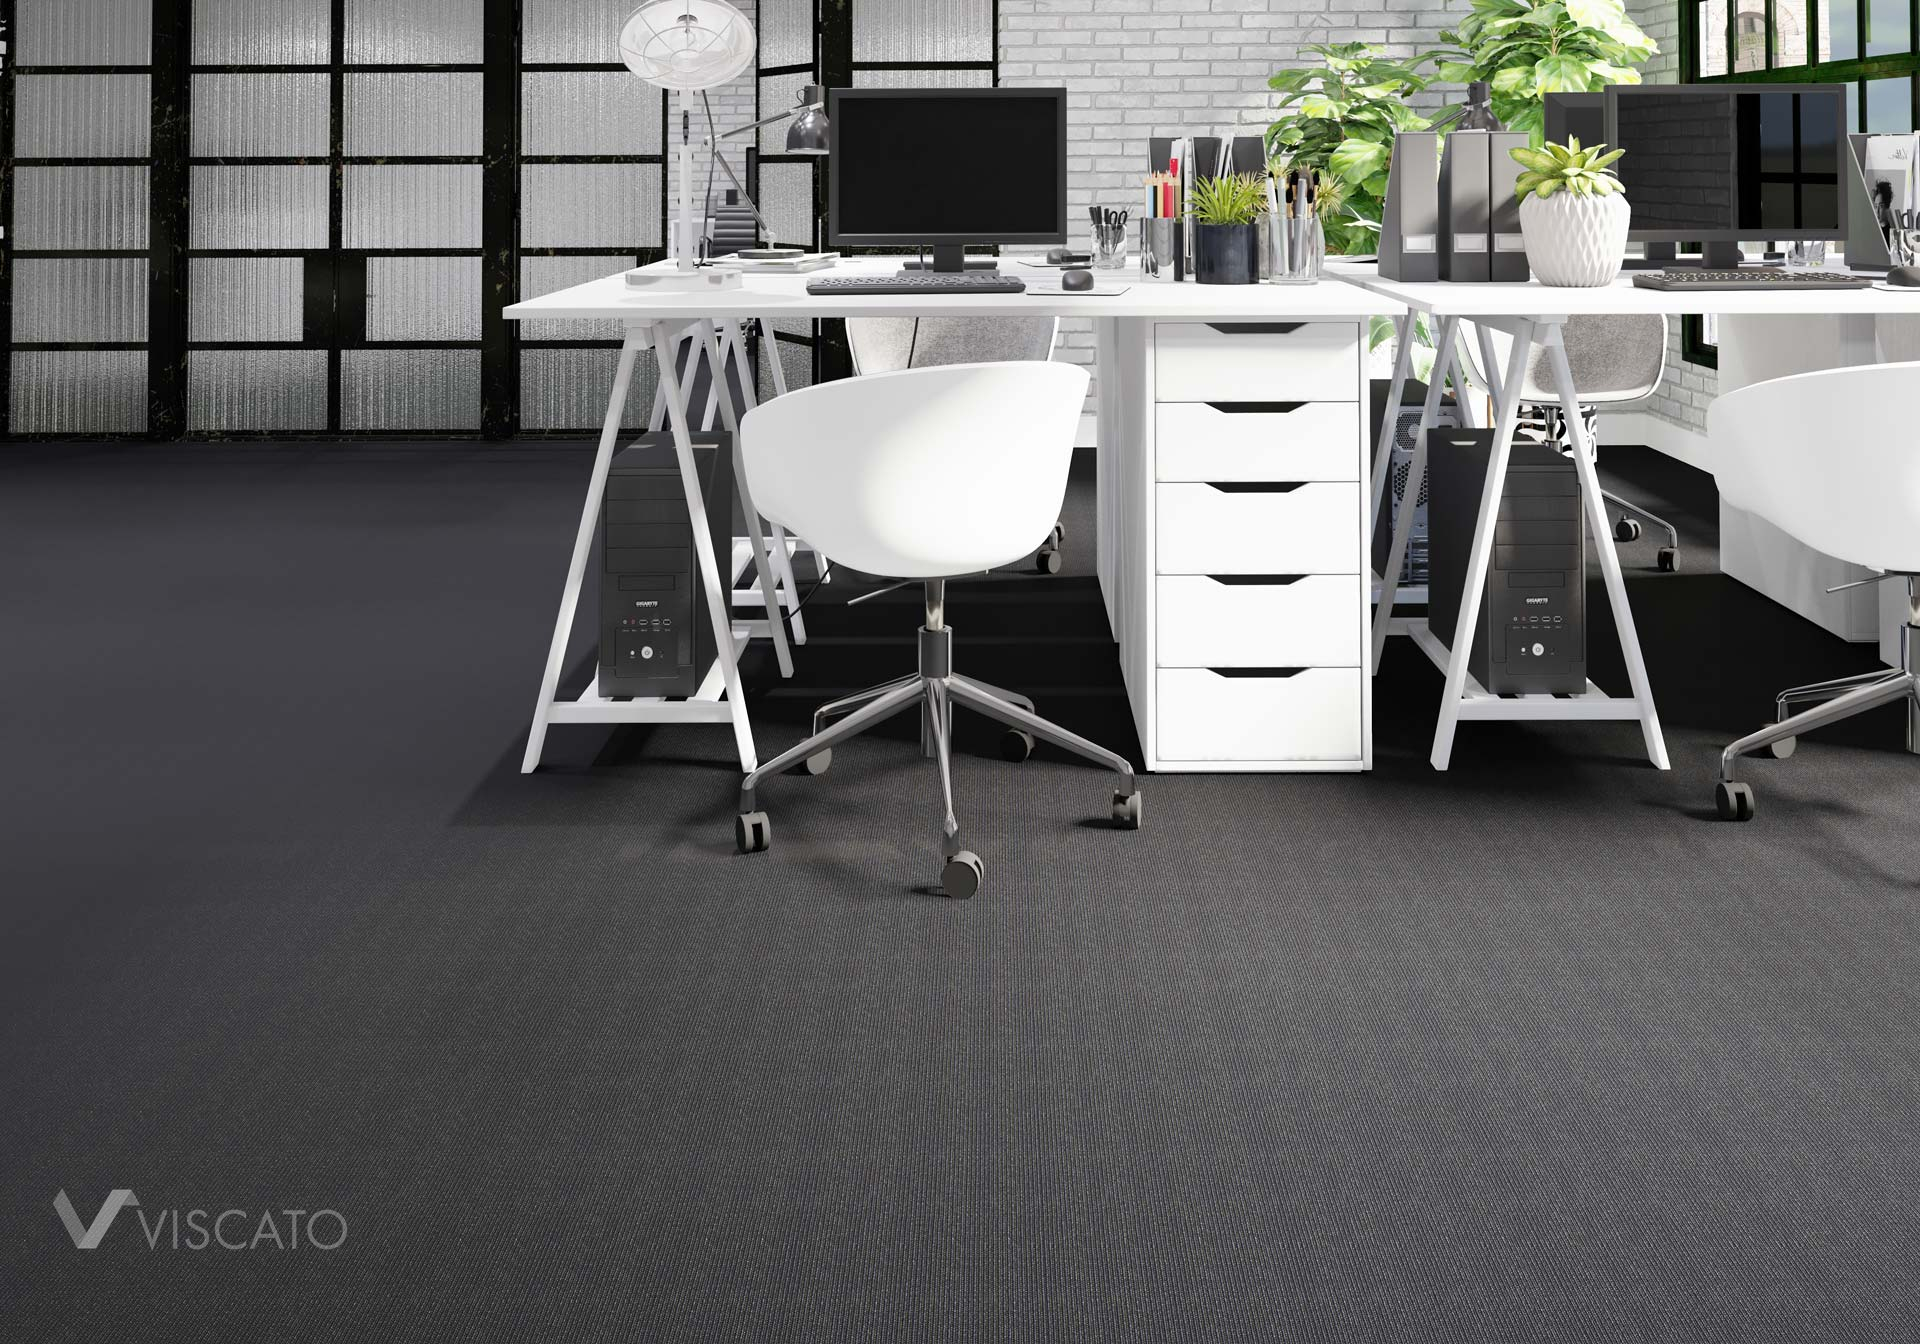 dark carpet in the office, Viscato 3D